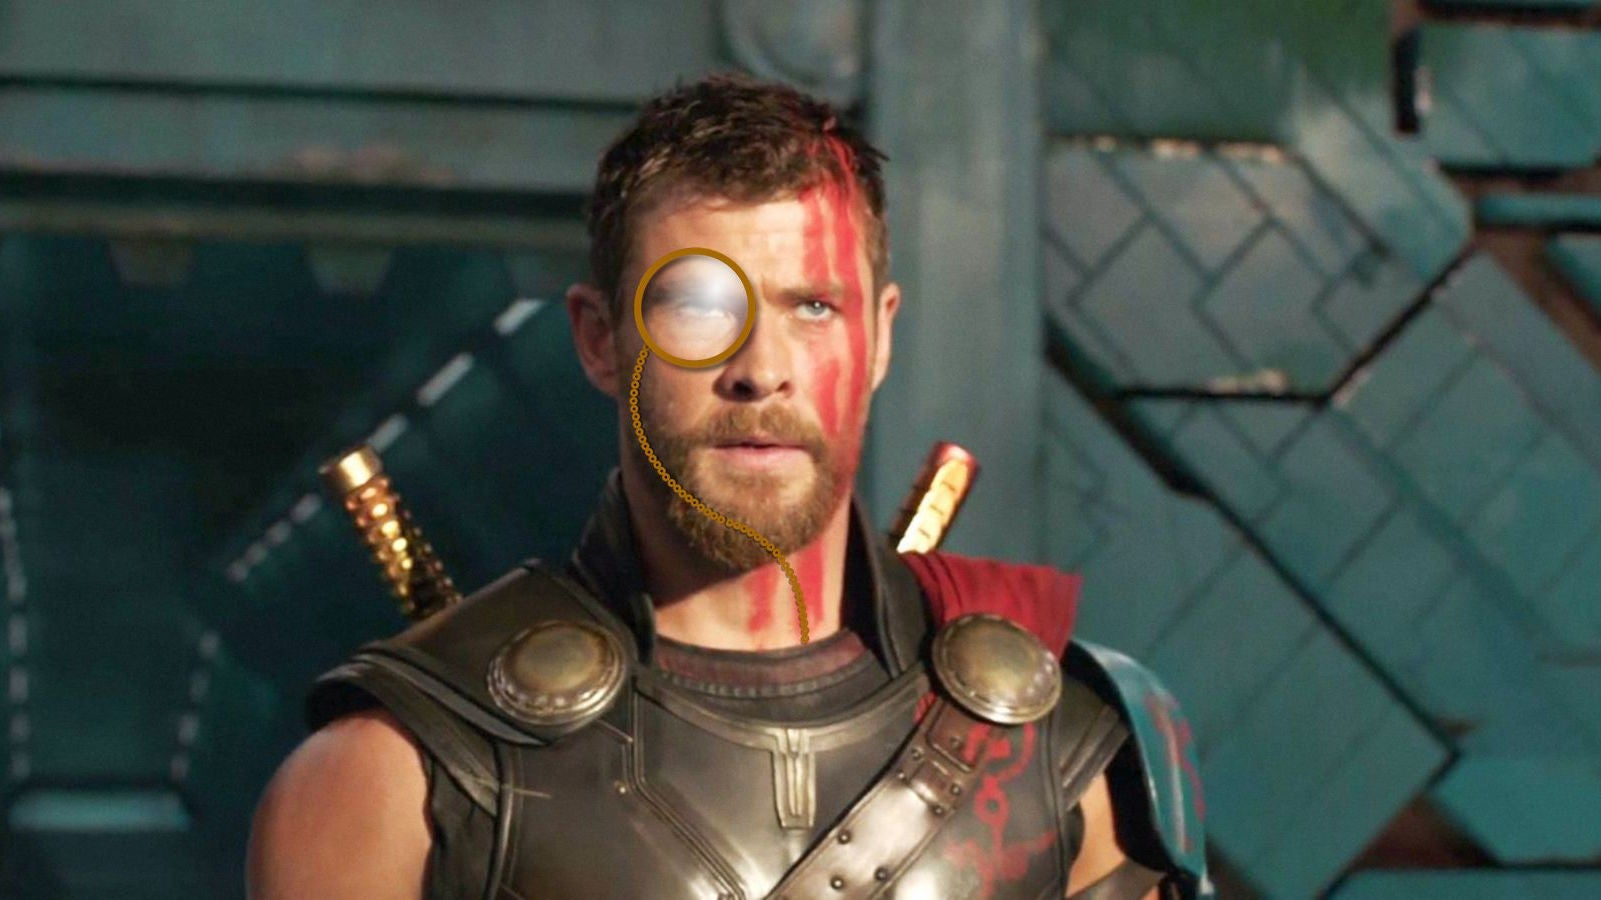 This May Explain How Marvel Dodged That Thor: Ragnarok Spoiler In First Infinity War Footage